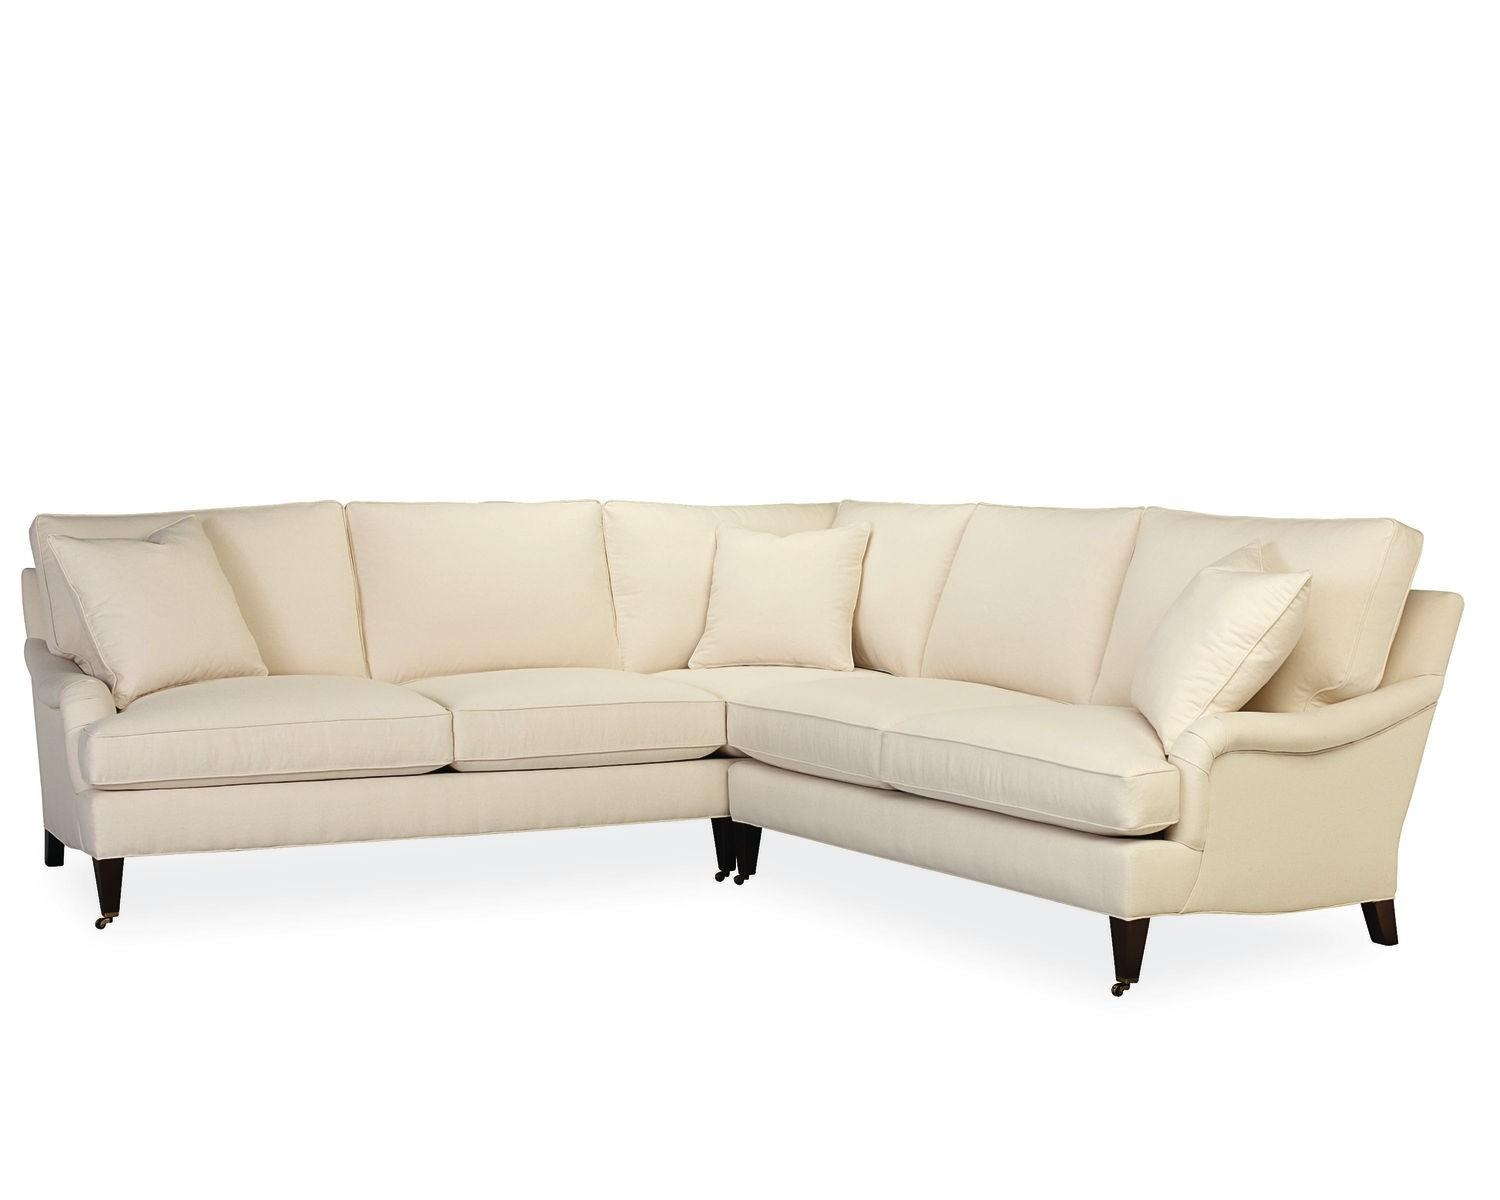 American Furniture | Savannah L Sectional | Lee Industries In Lee Industries Sectional (View 11 of 20)